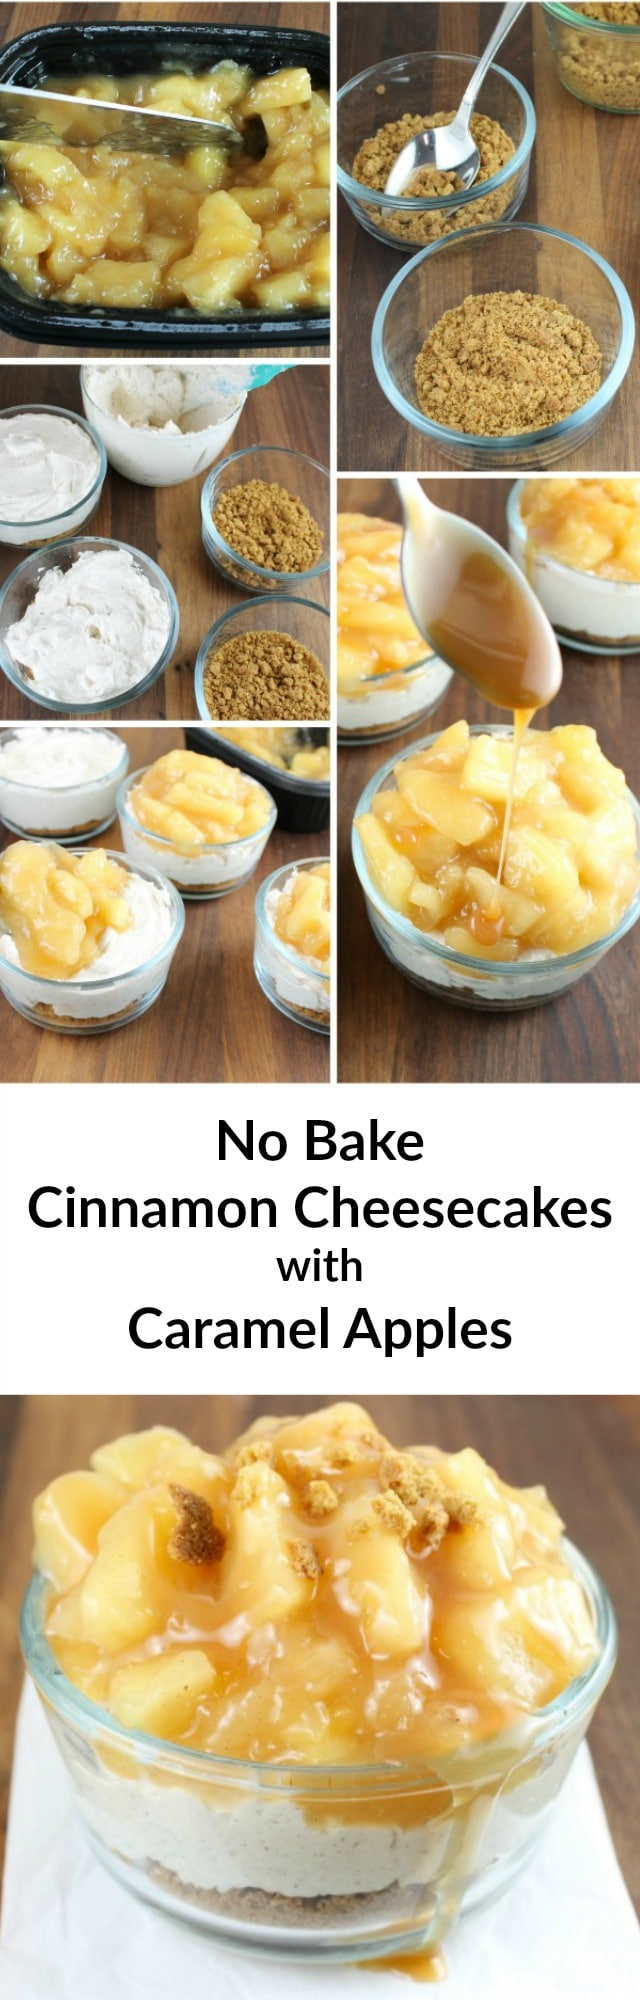 No Bake Cinnamon Cheesecakes with Glazed Apples Recipe found at Miss in the Kitchen